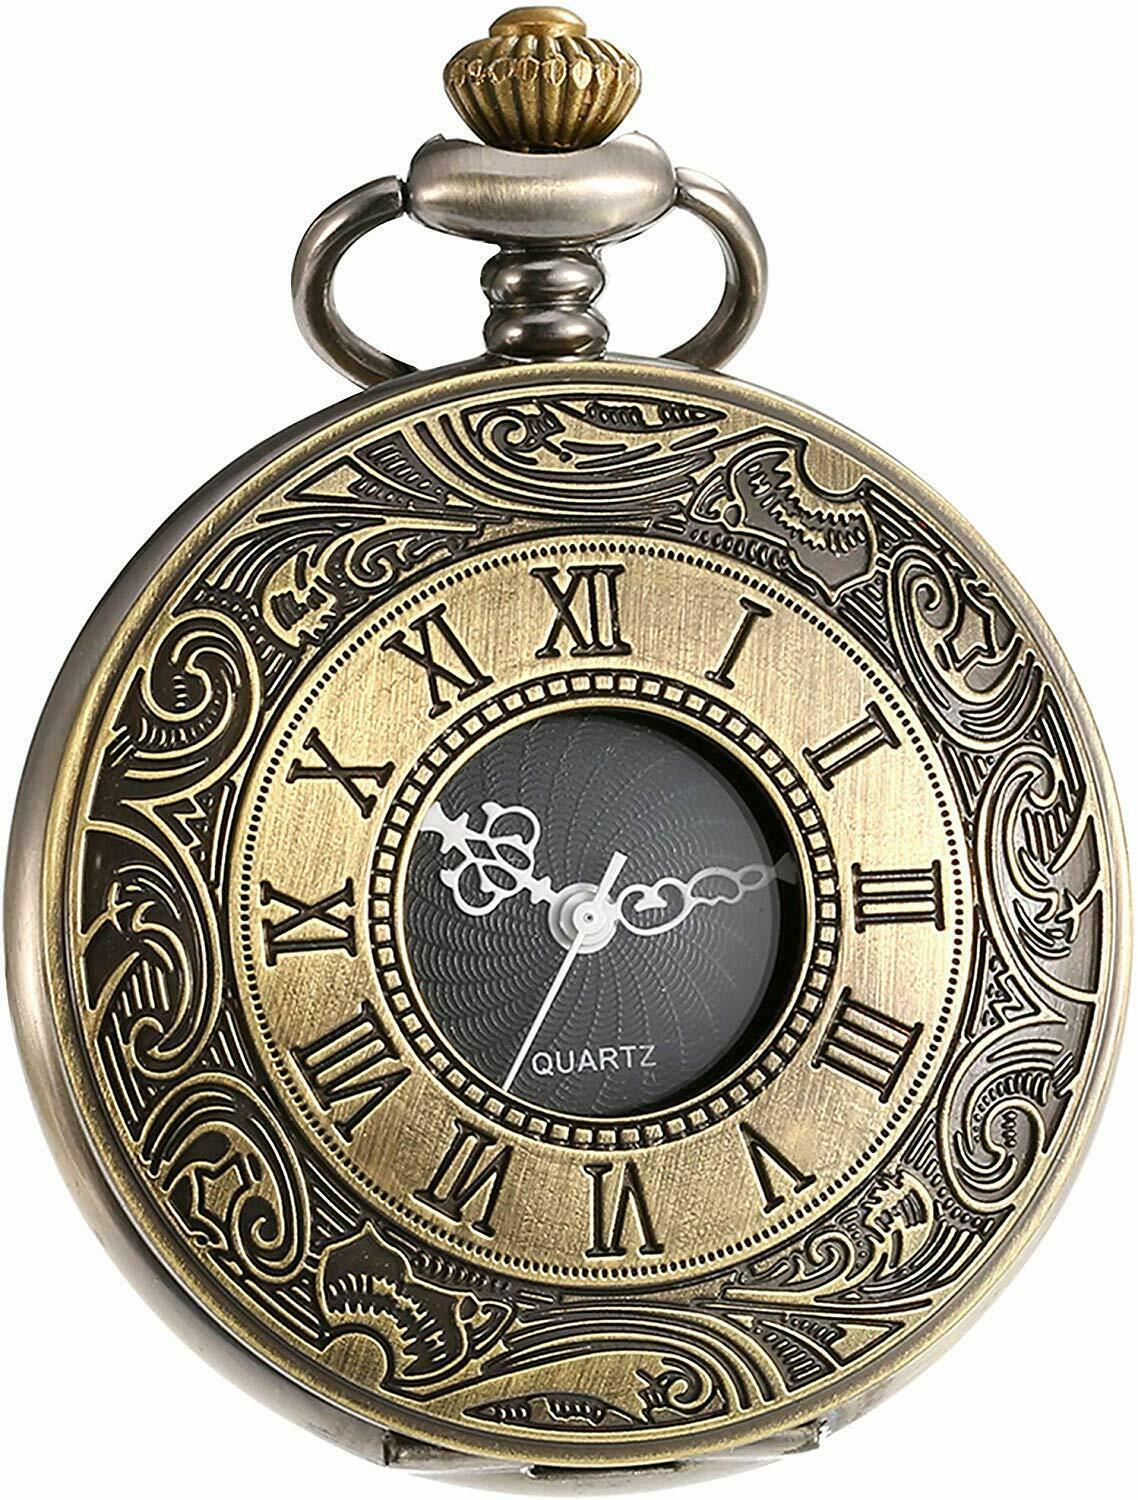 Primary image for Vintage Roman Numerals Scale Quartz Pocket Watch with Chain